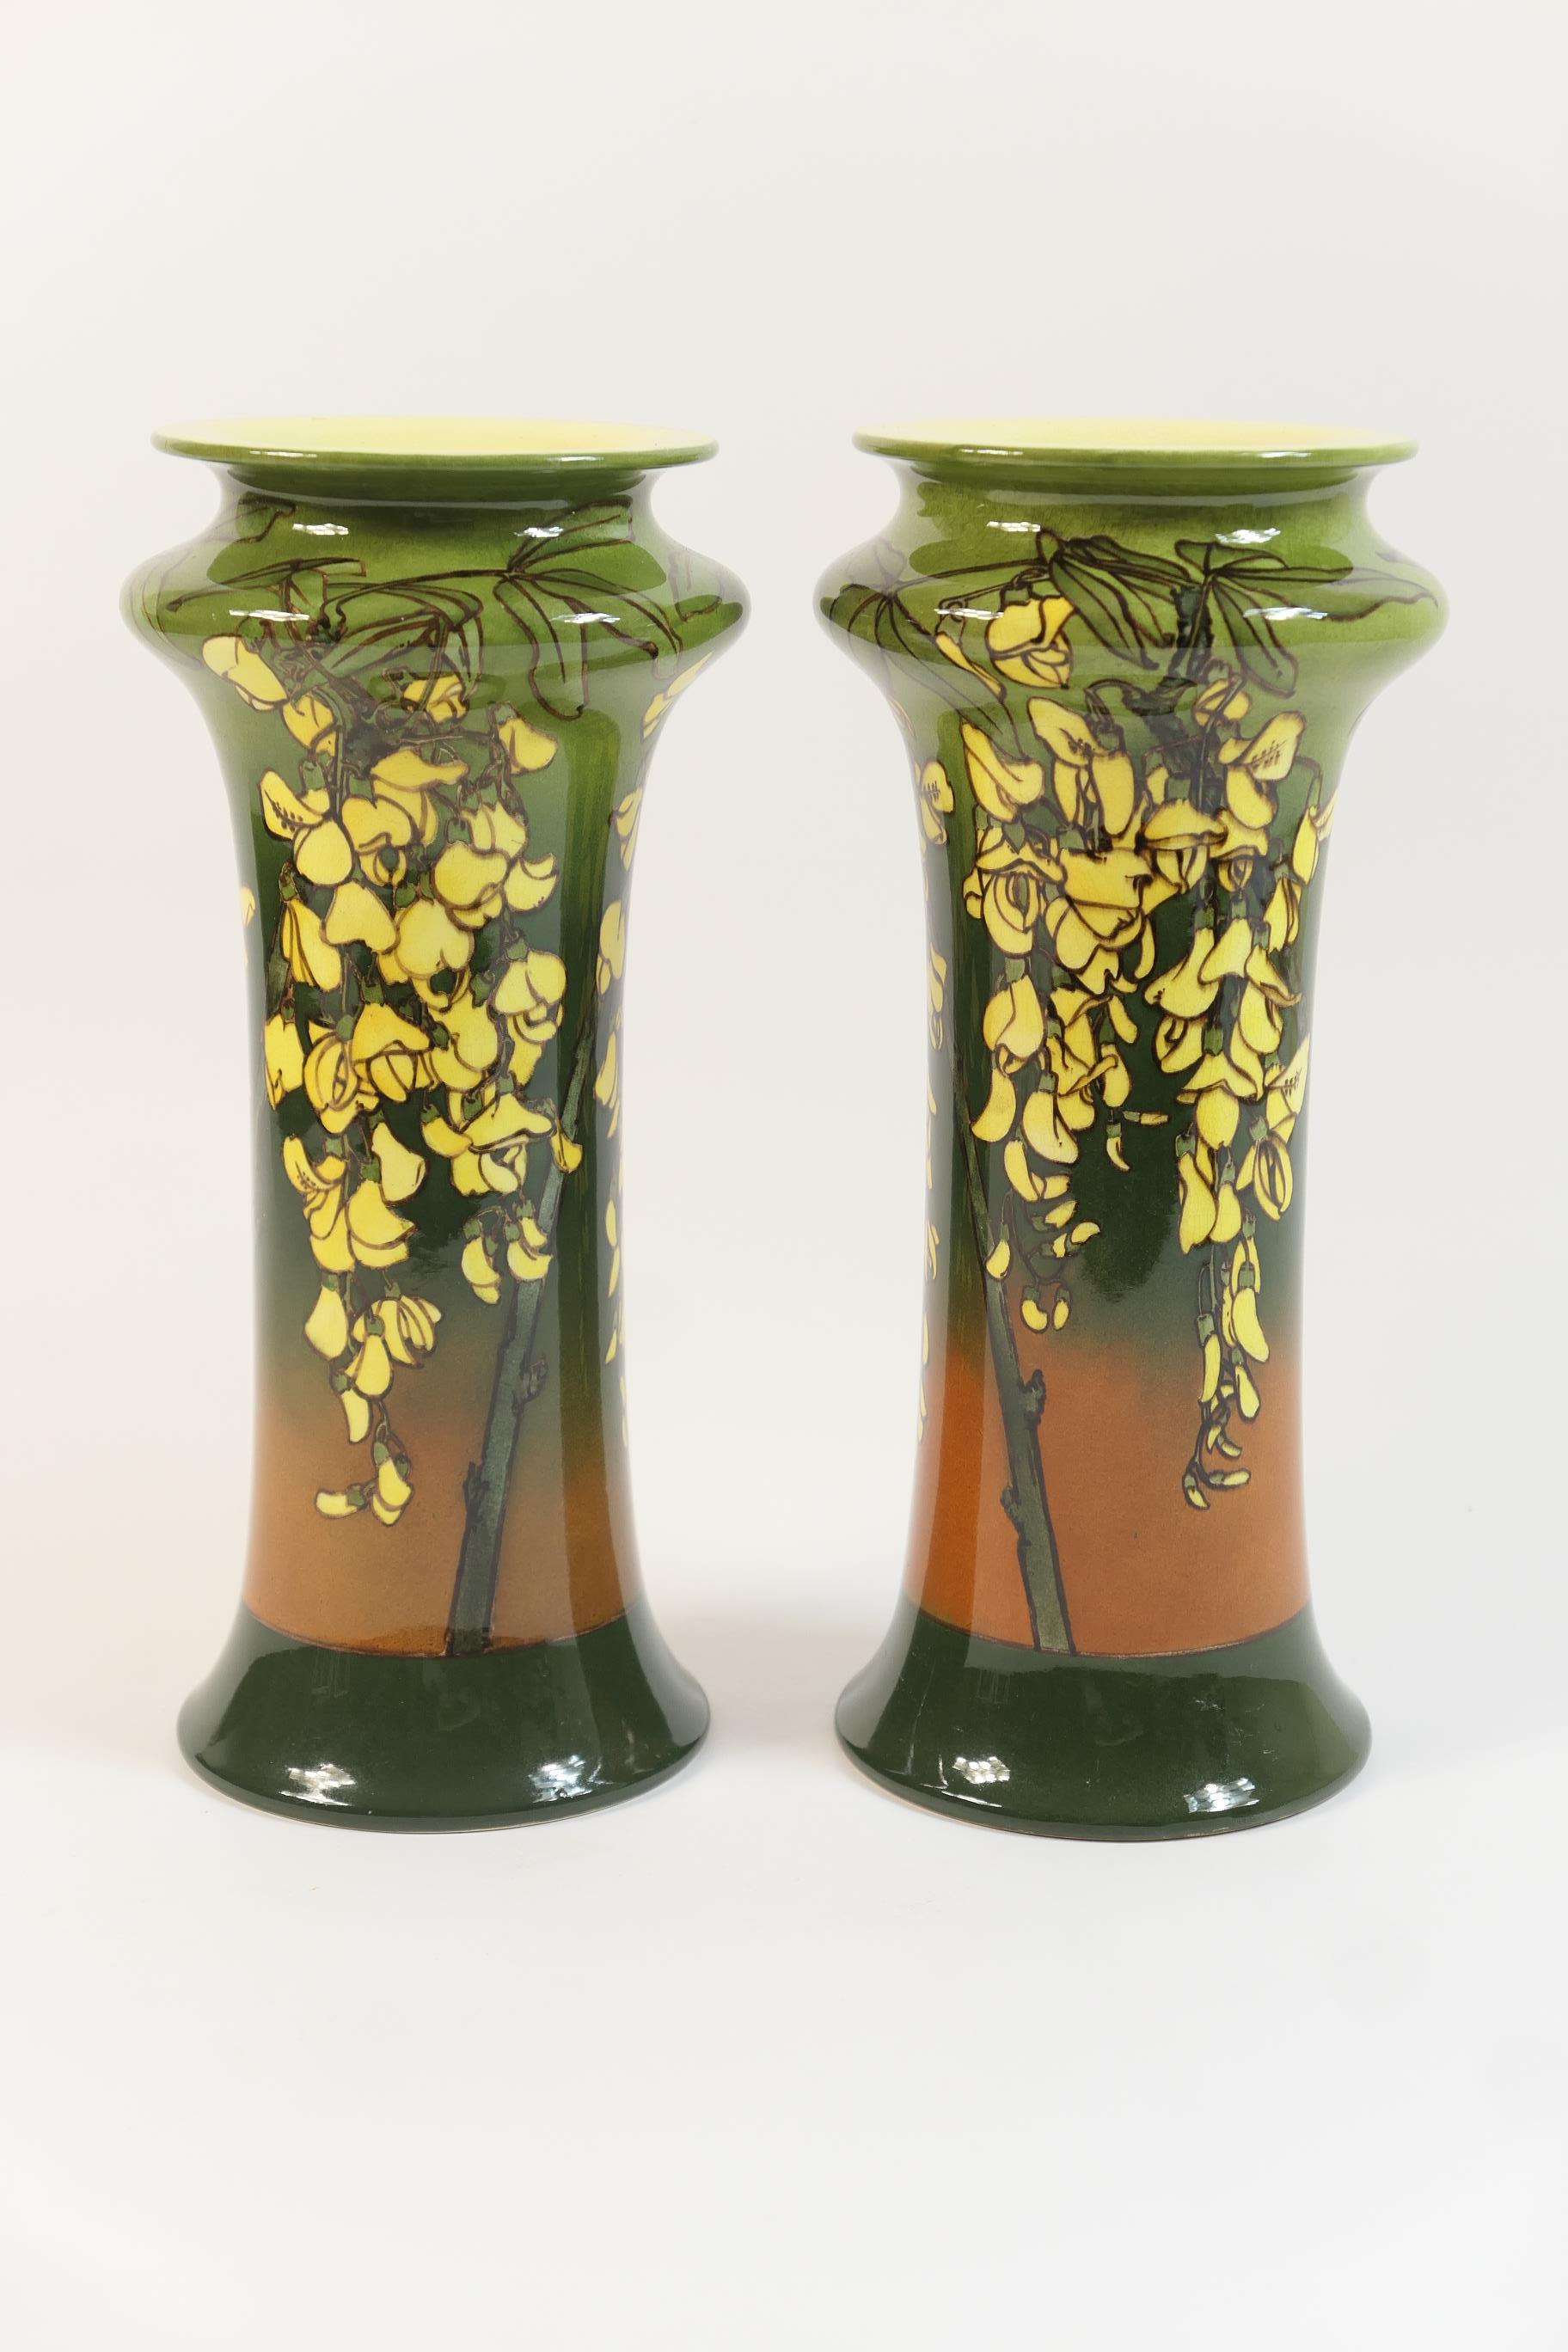 Lot 53 - Pair of Doulton Lambeth faience vases, probably by Harriette Knight and Minnie Webb, circa 1893,